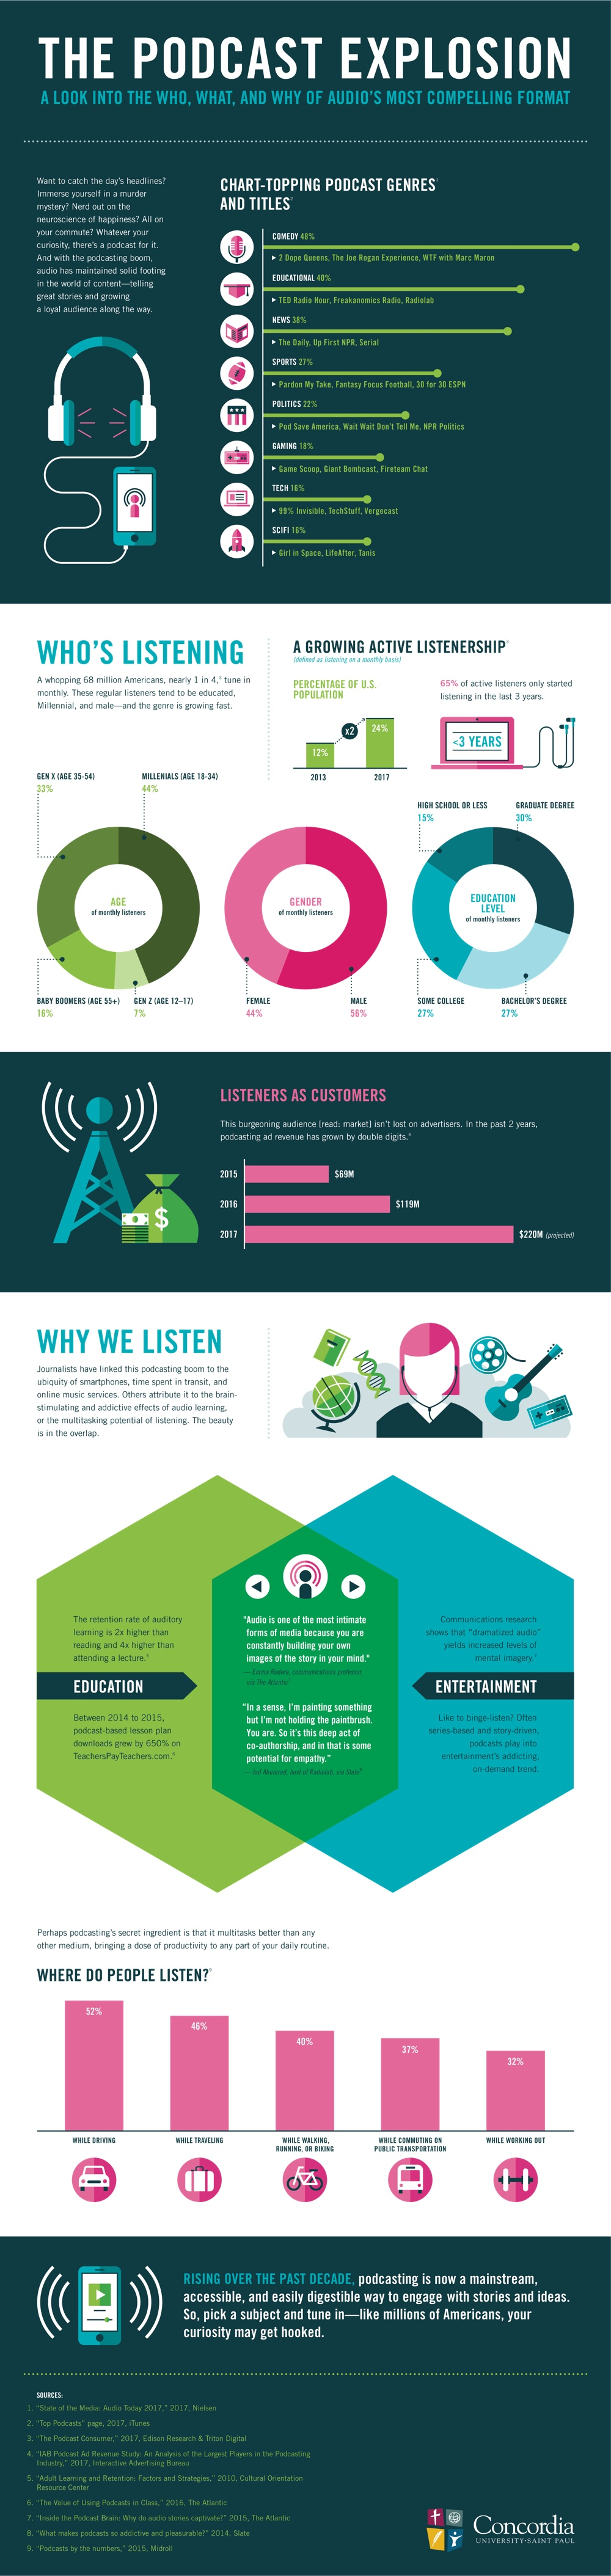 podcasting-boom-infographic.jpg